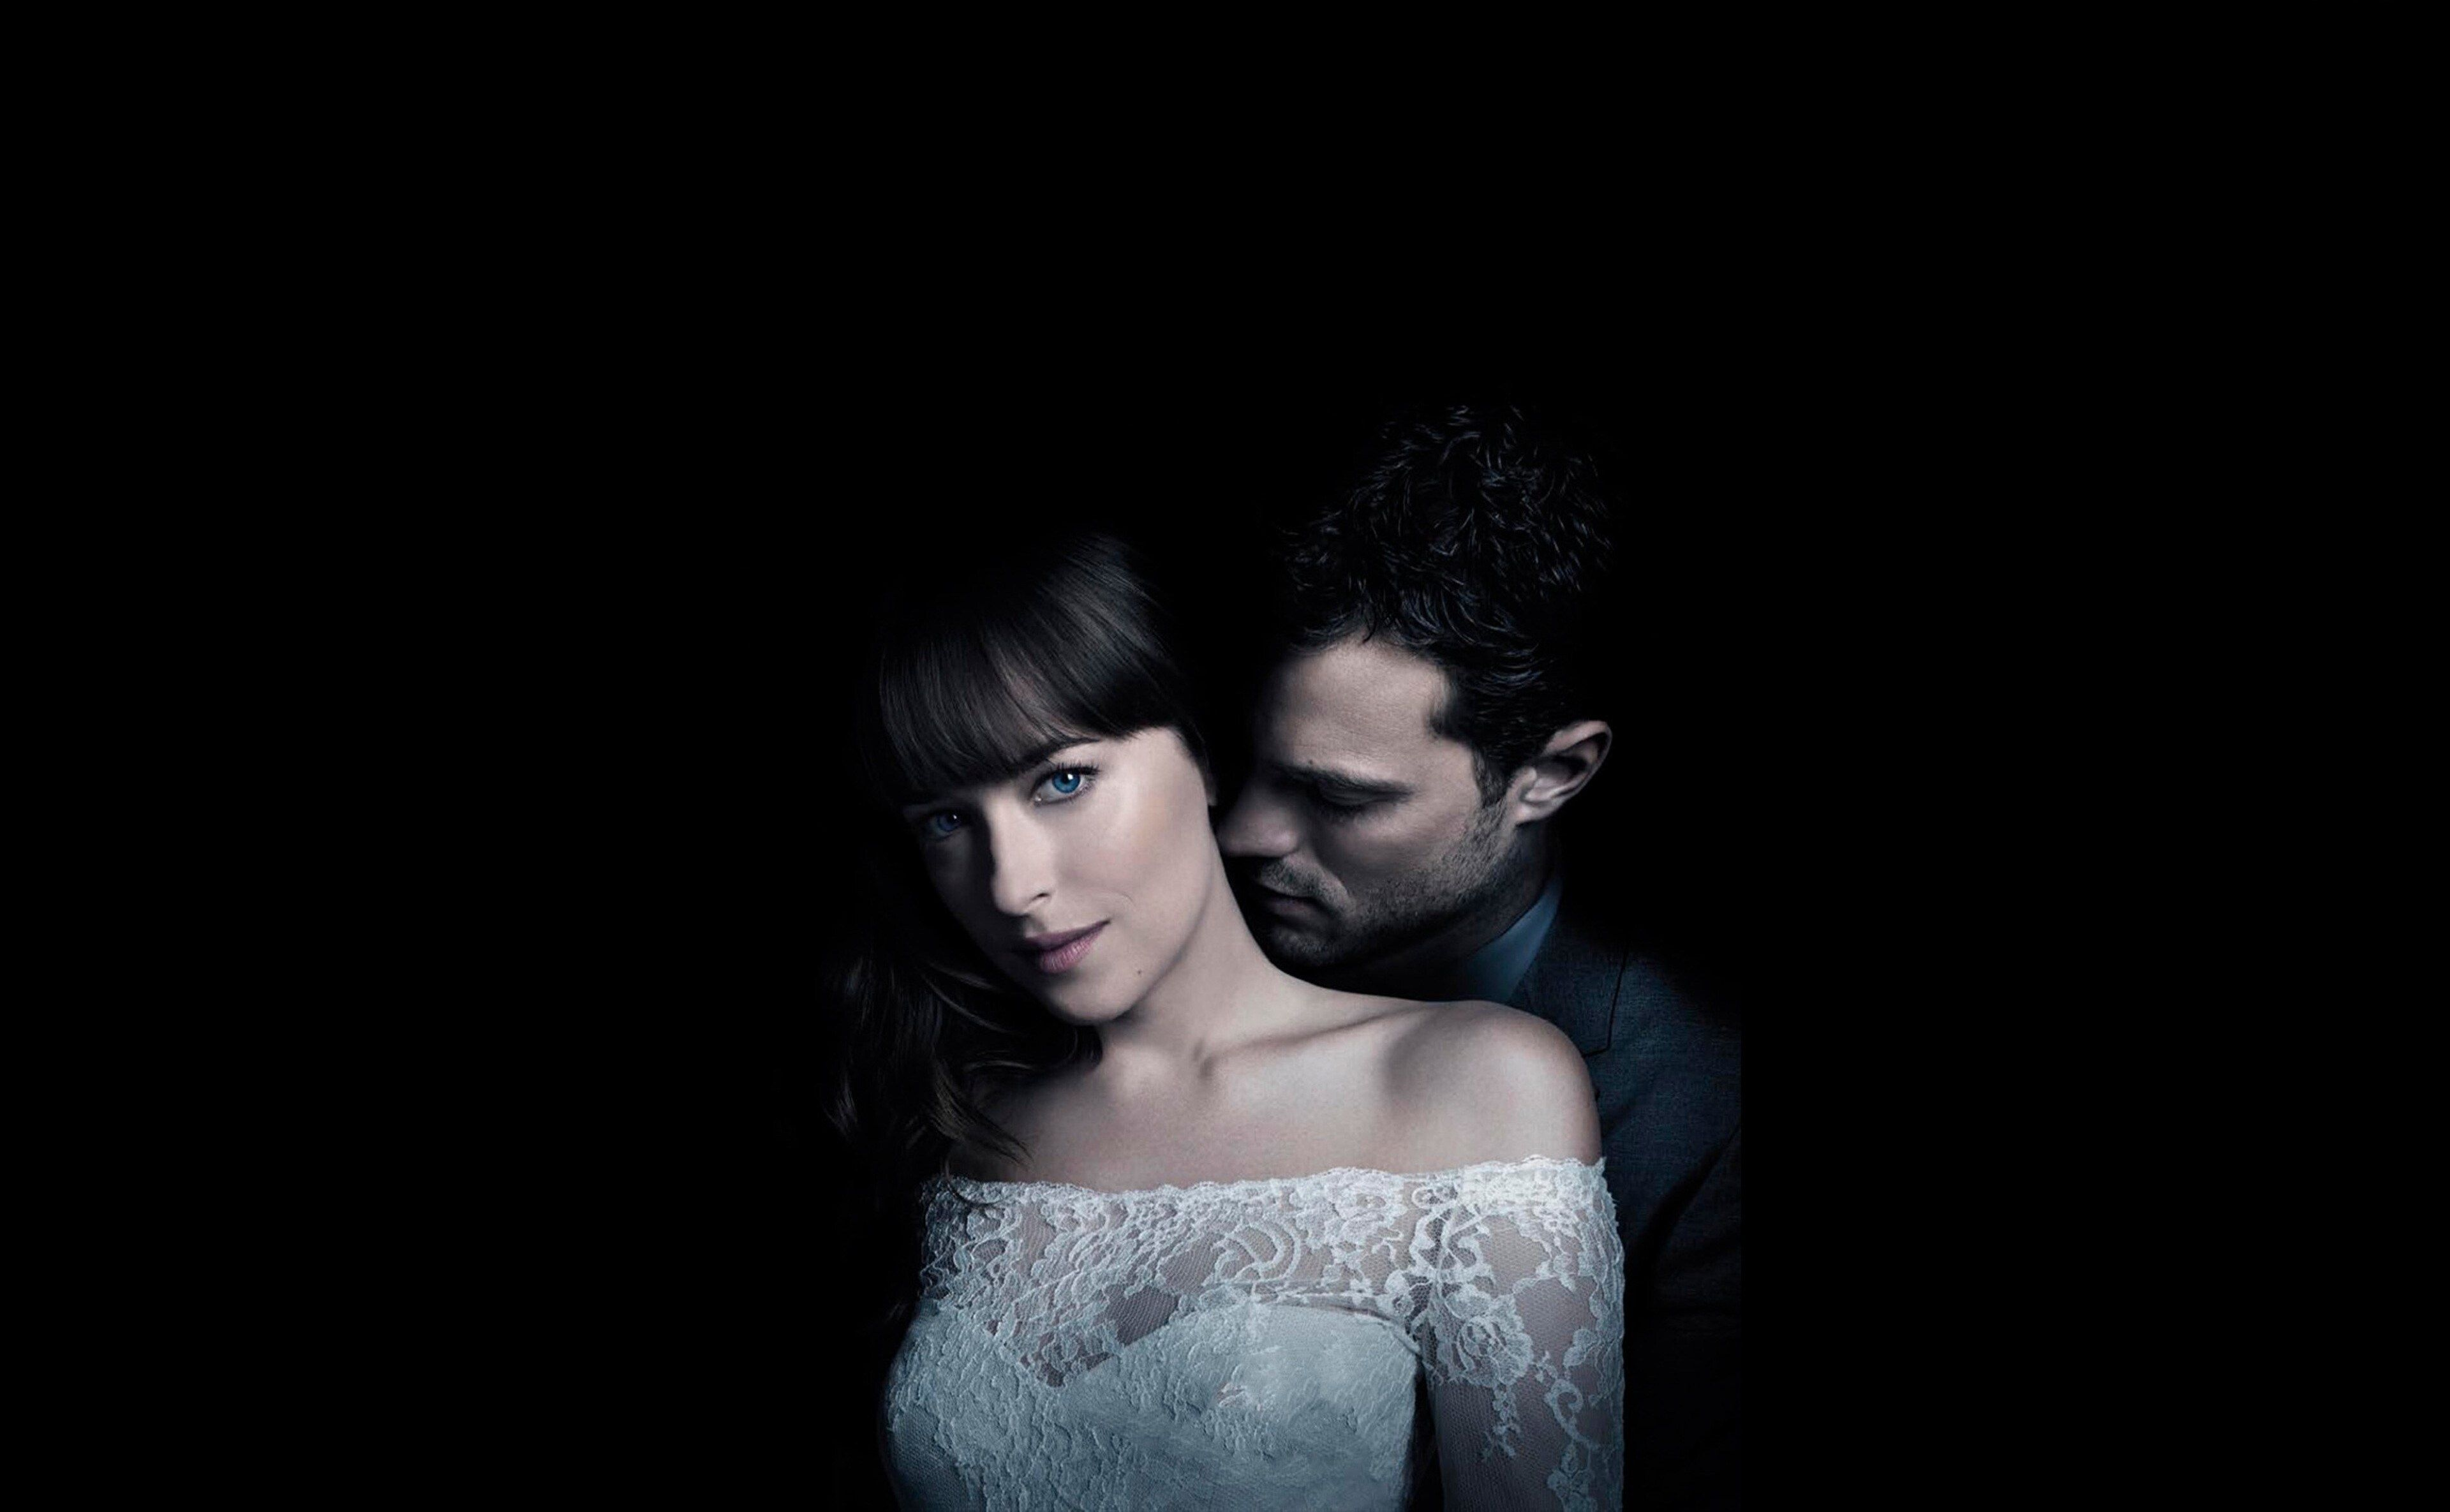 3840x2370 fifty shades freed 4k wallpaper pictures free | Christian gray  fifty shades, Fifty shades, Fifty shades series